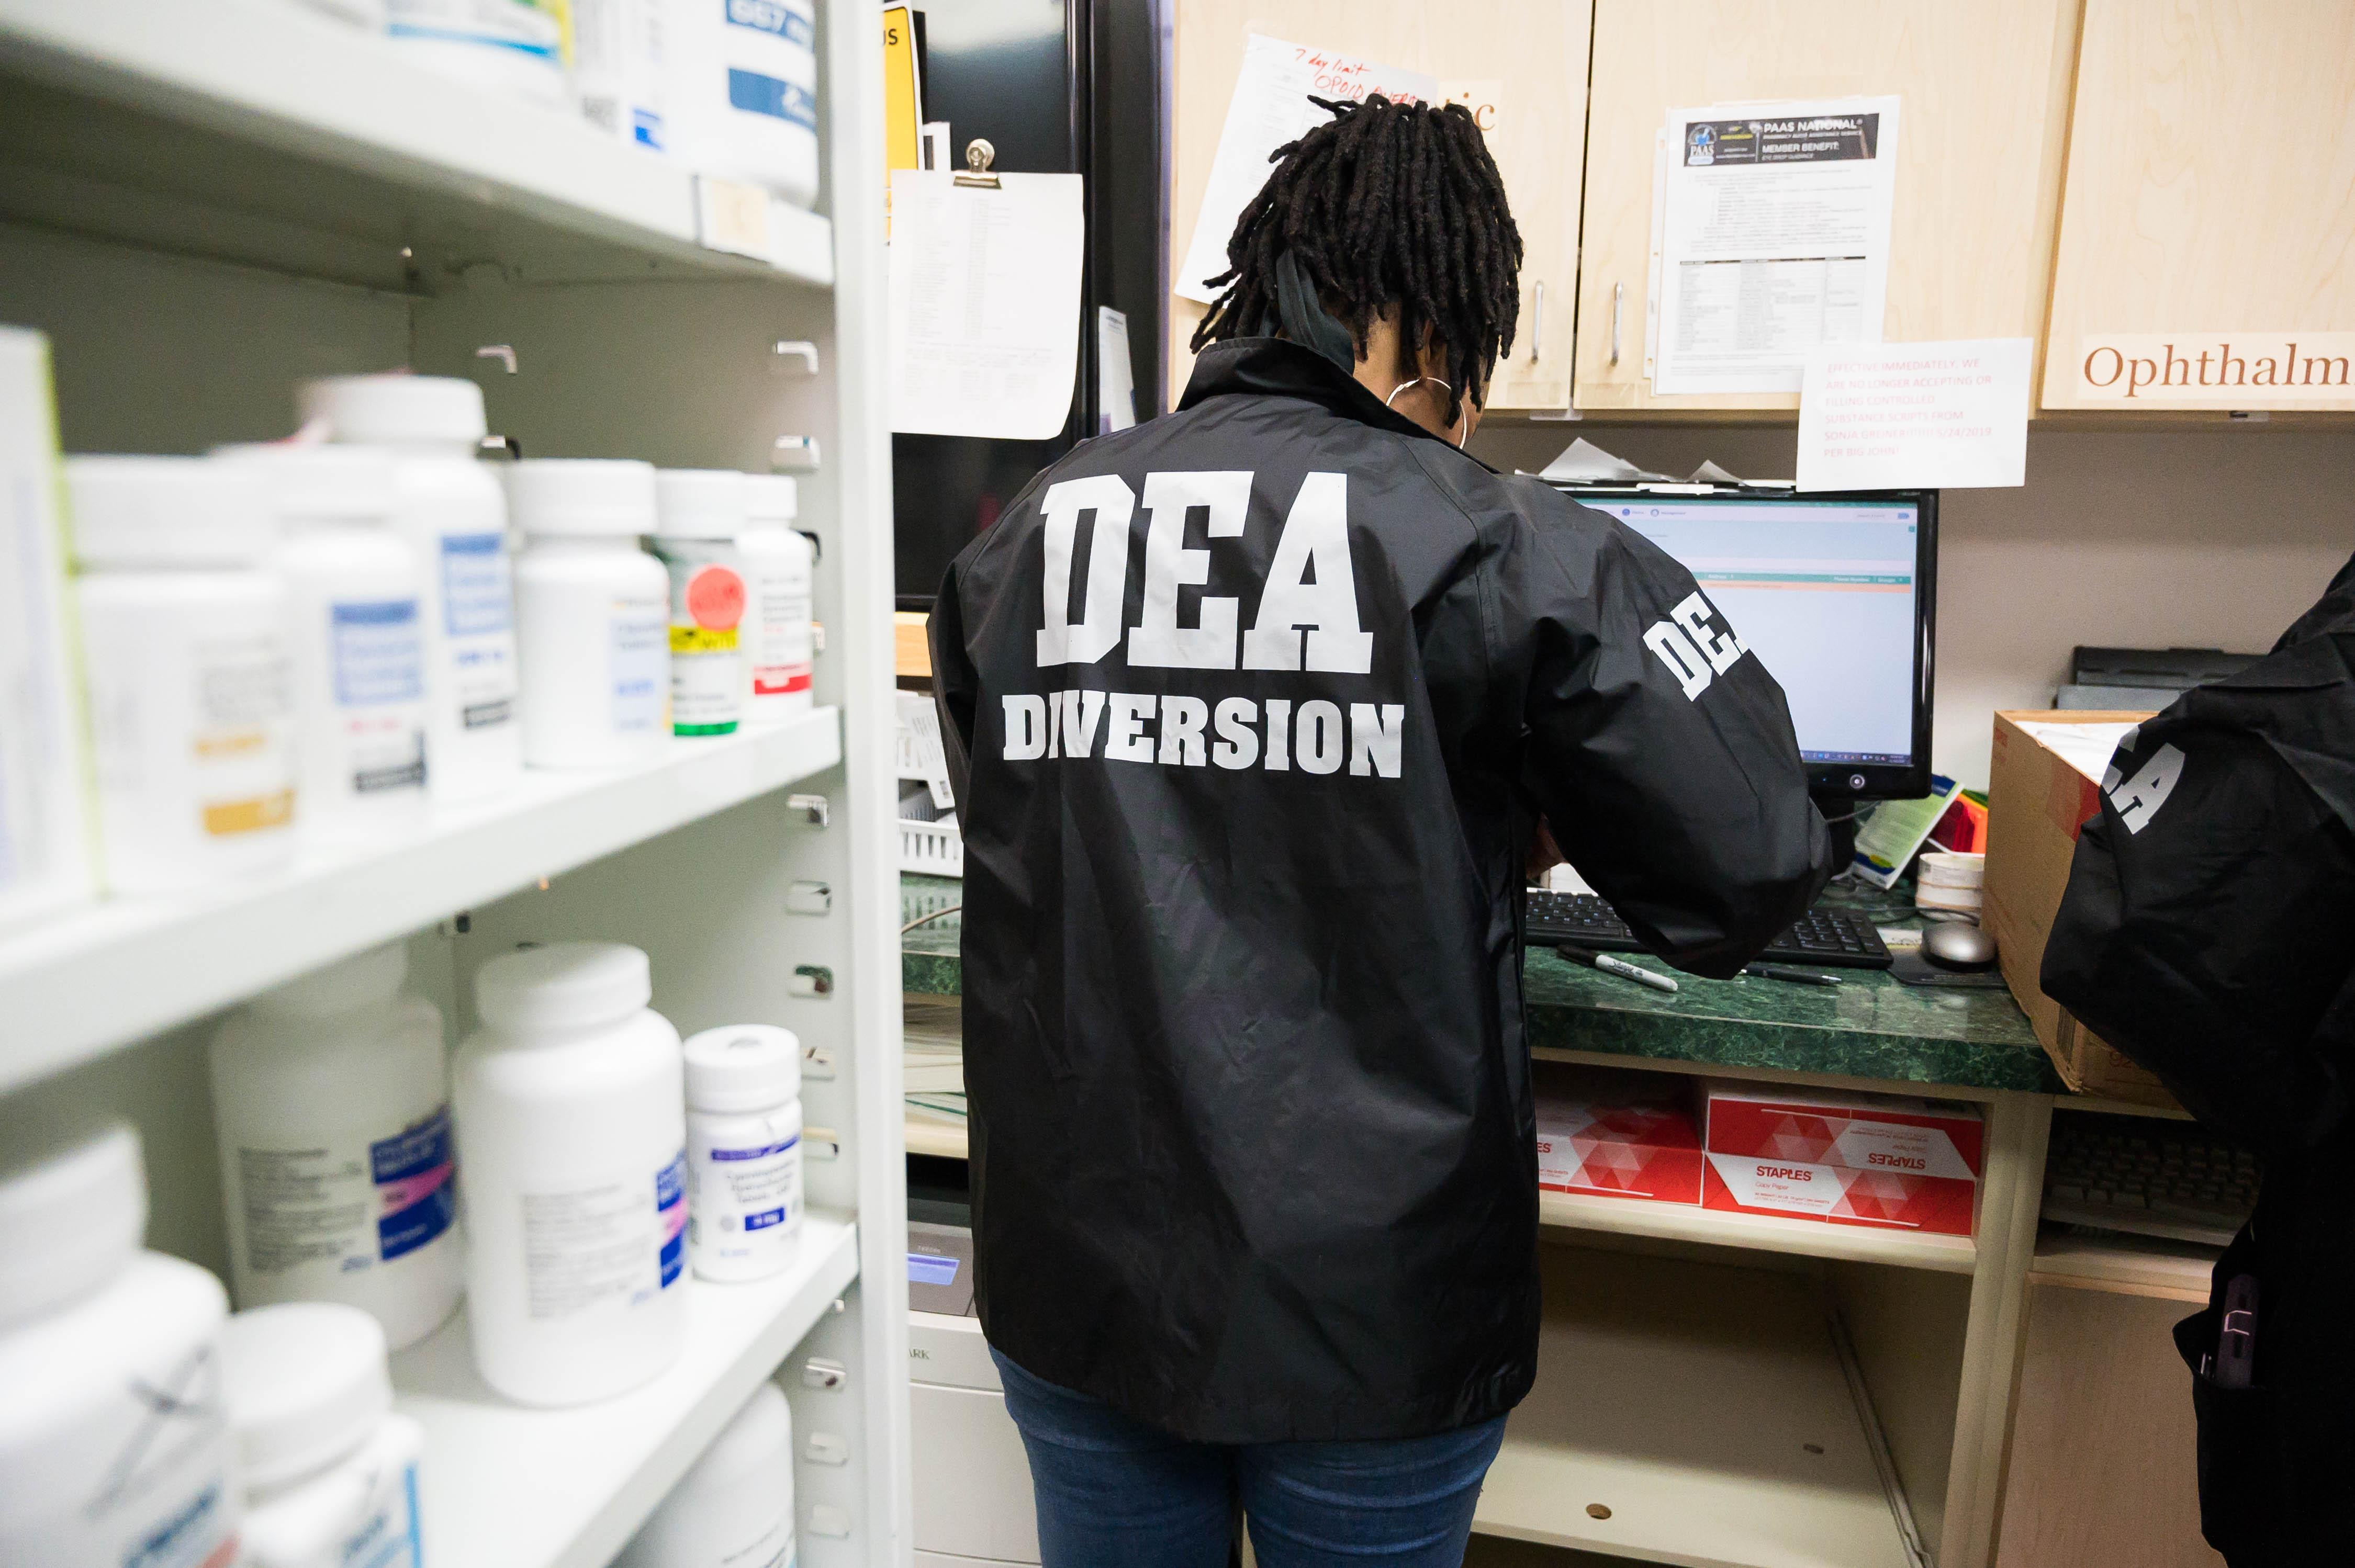 DEA Mobile Diversion Squad team member at work